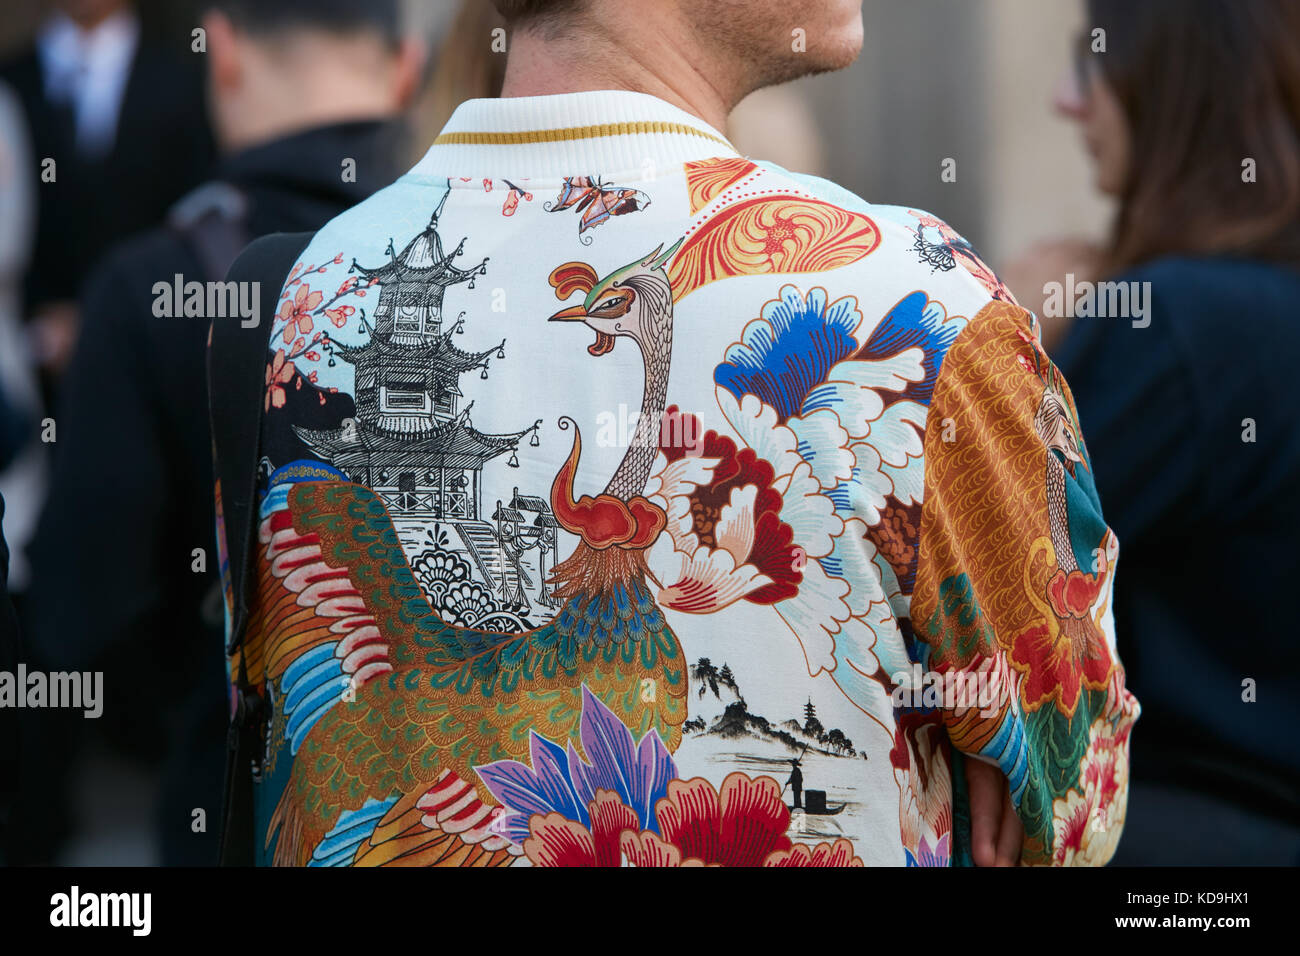 612452660 MILAN - SEPTEMBER 21: Man with bomber jacket with oriental floral decoration  with peacock and